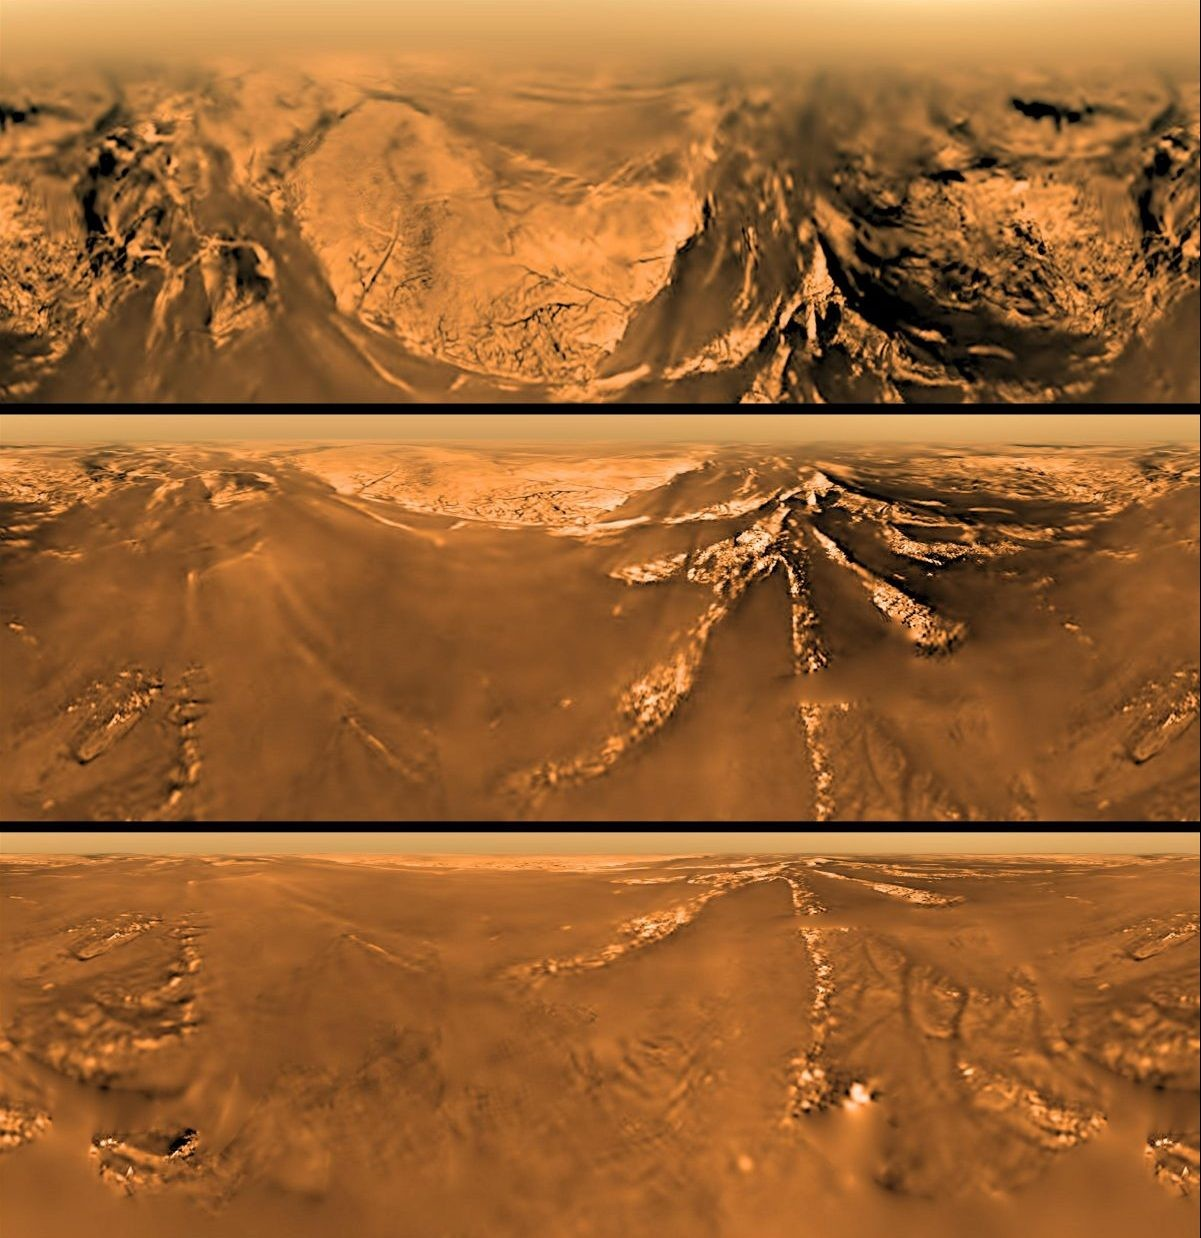 Views of Titan's surface as seen by the Huygens lander during its descent onto the surface of the icy moon, 14 January 2005. Credit: ESA/NASA/JPL/University of Arizona